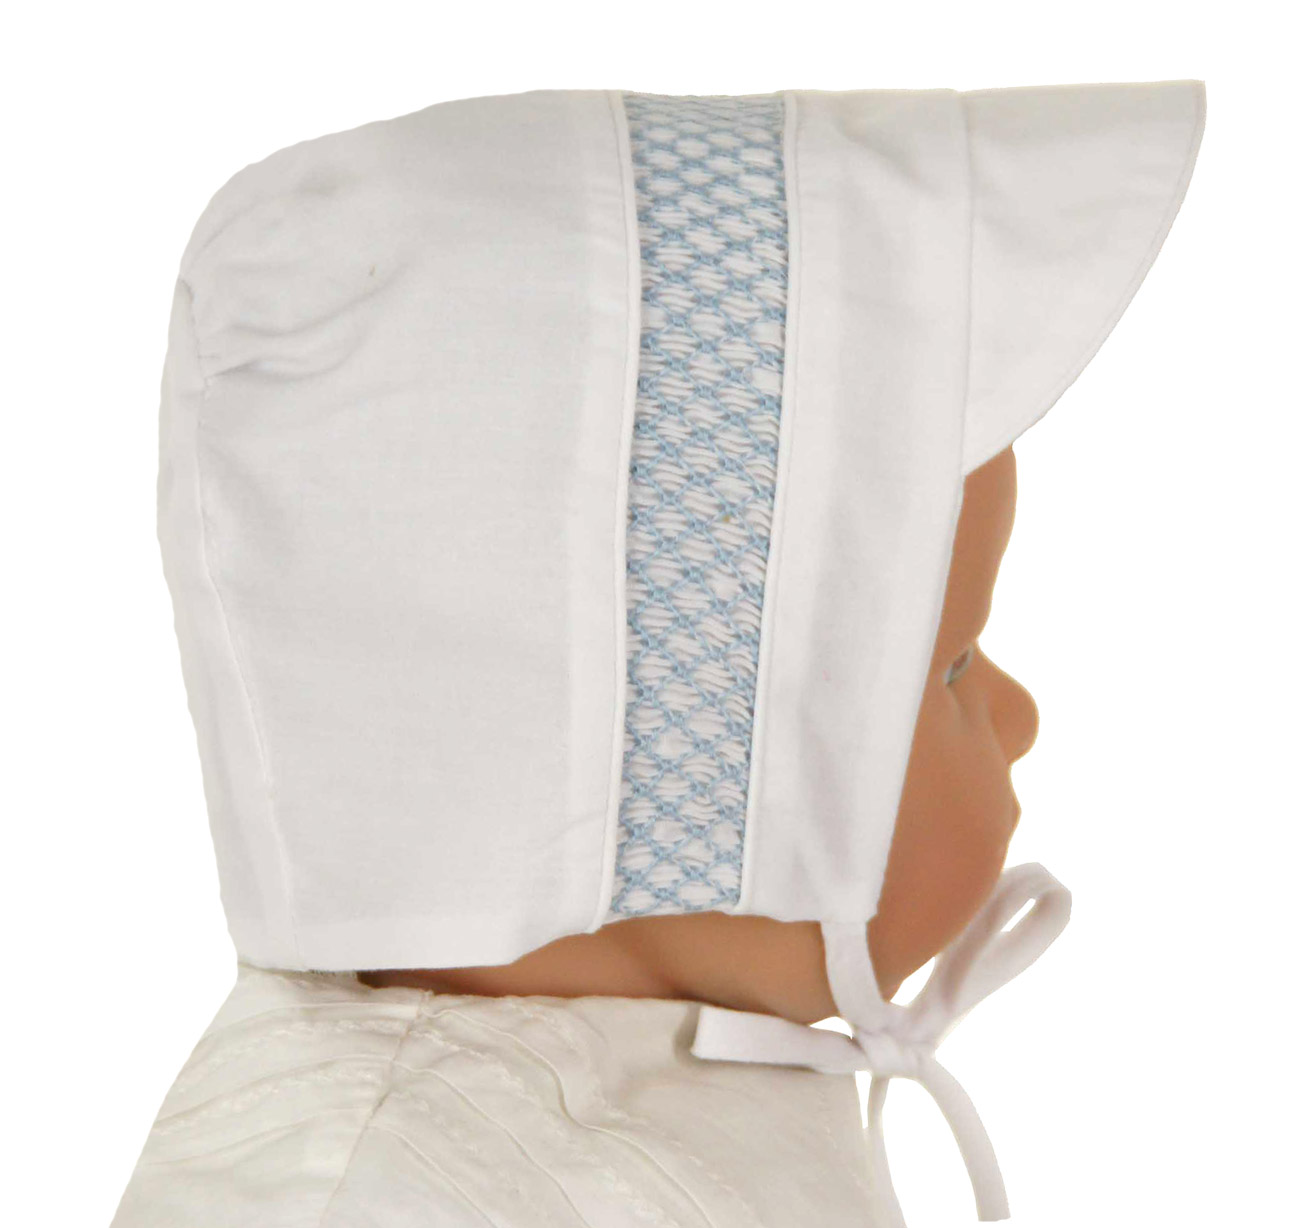 dbb074a69d5 Feltman Brothers white baby hat with blue smocking